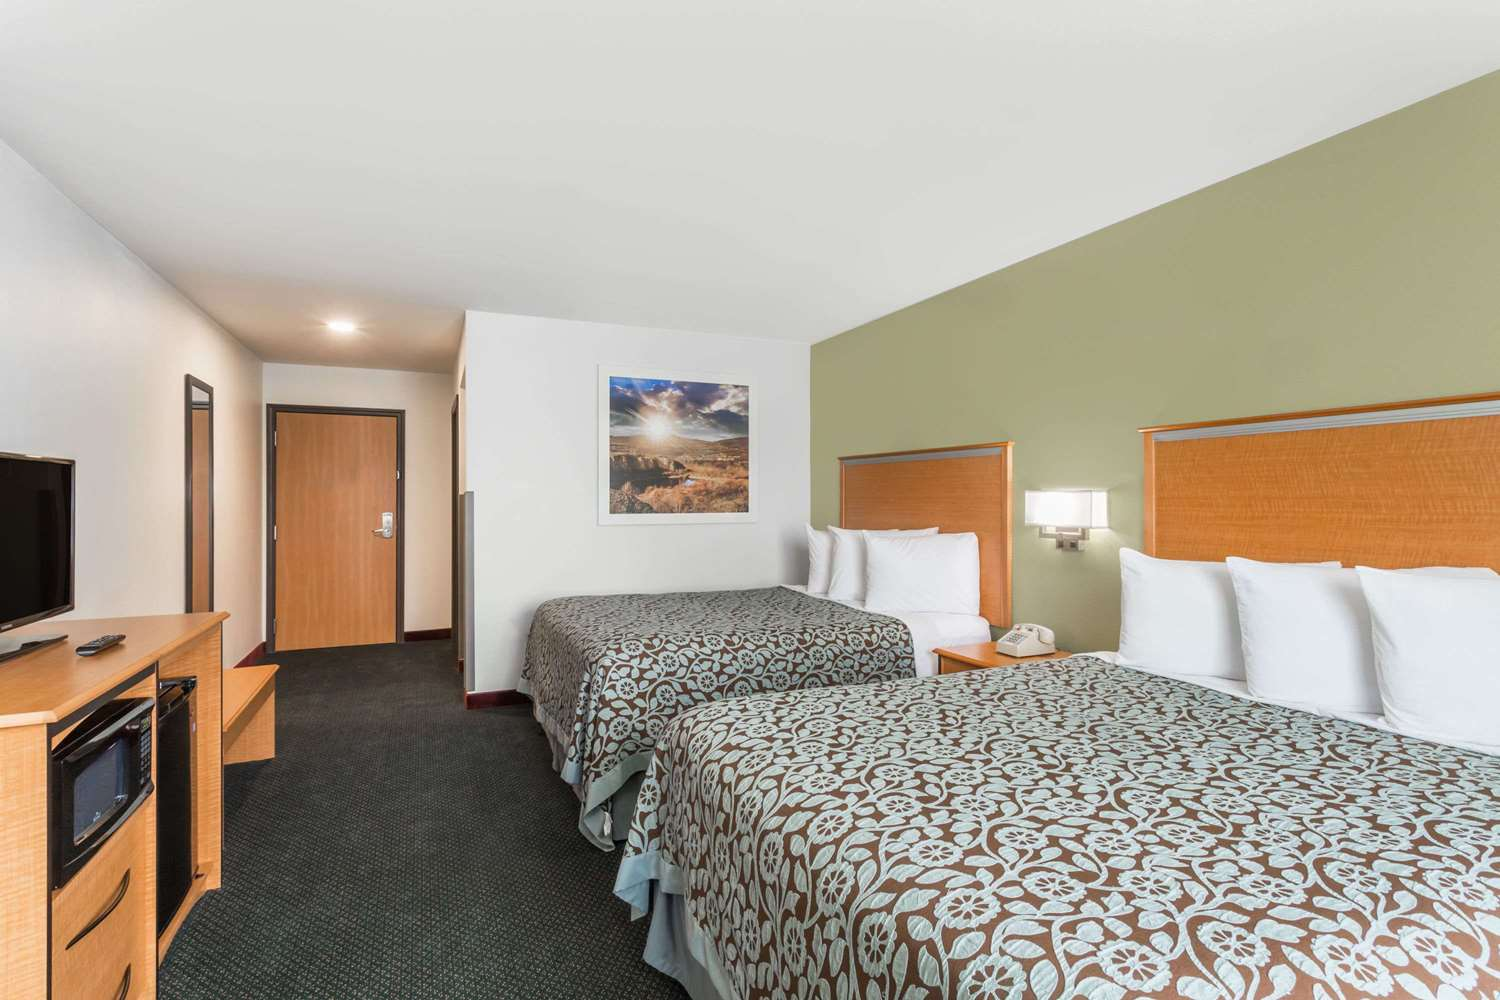 Days Inn West Yellowstone, MT - See Discounts